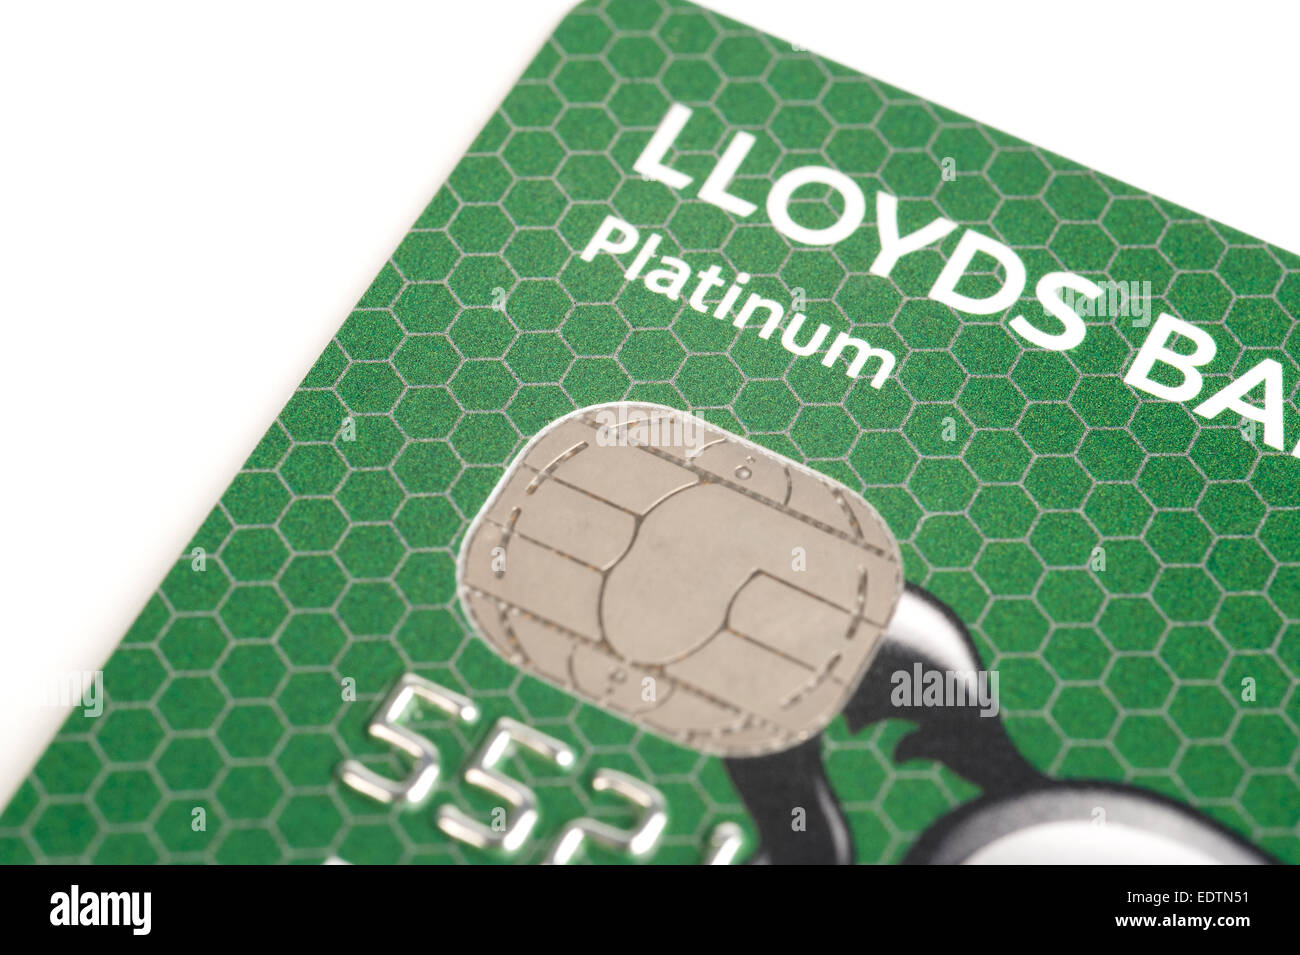 Lloyds Card Stock Photos & Lloyds Card Stock Images - Alamy